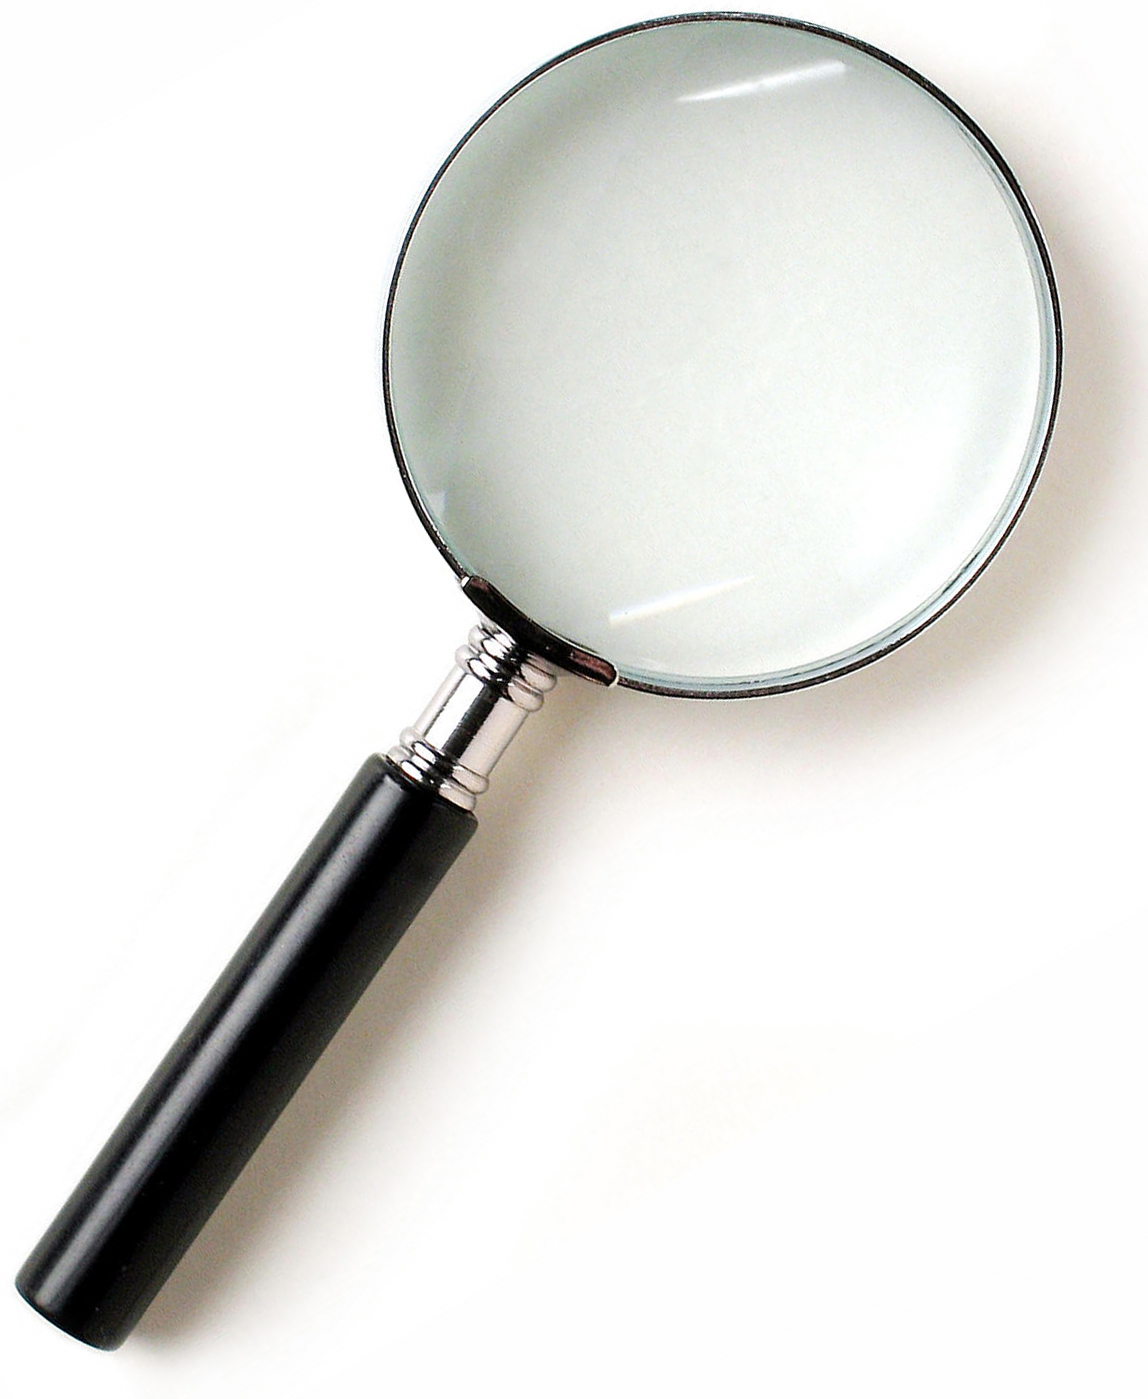 magnifying glass know your meme